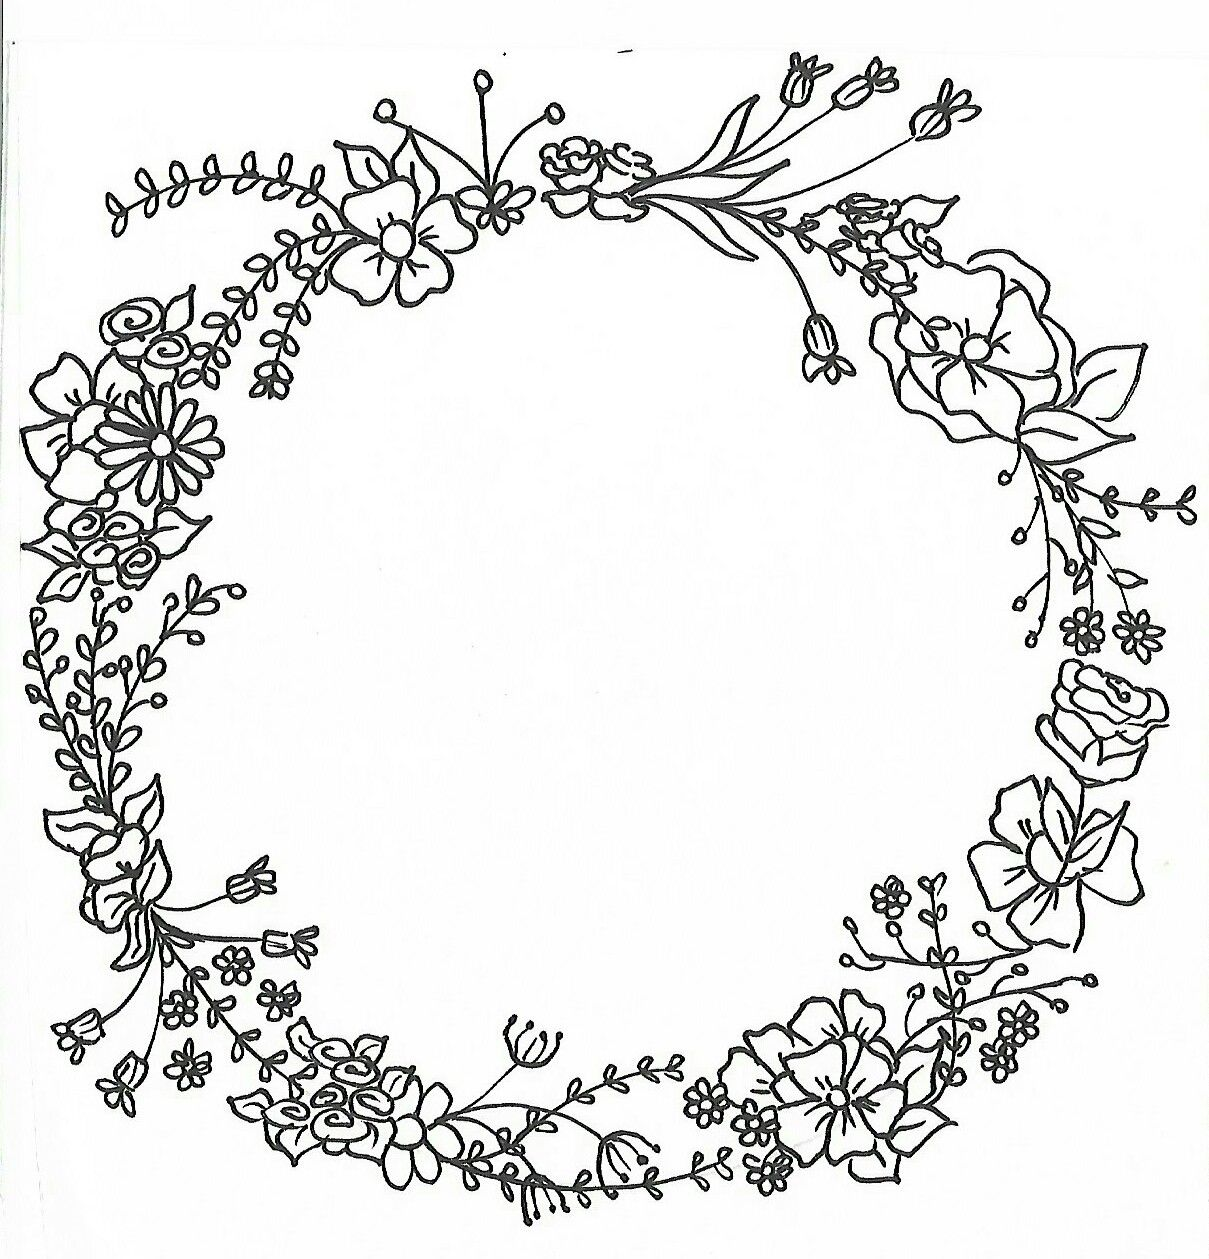 1209x1259 Wreath Mandalas For Paint Hand Drawing Hand Drawn Flowers Drawing